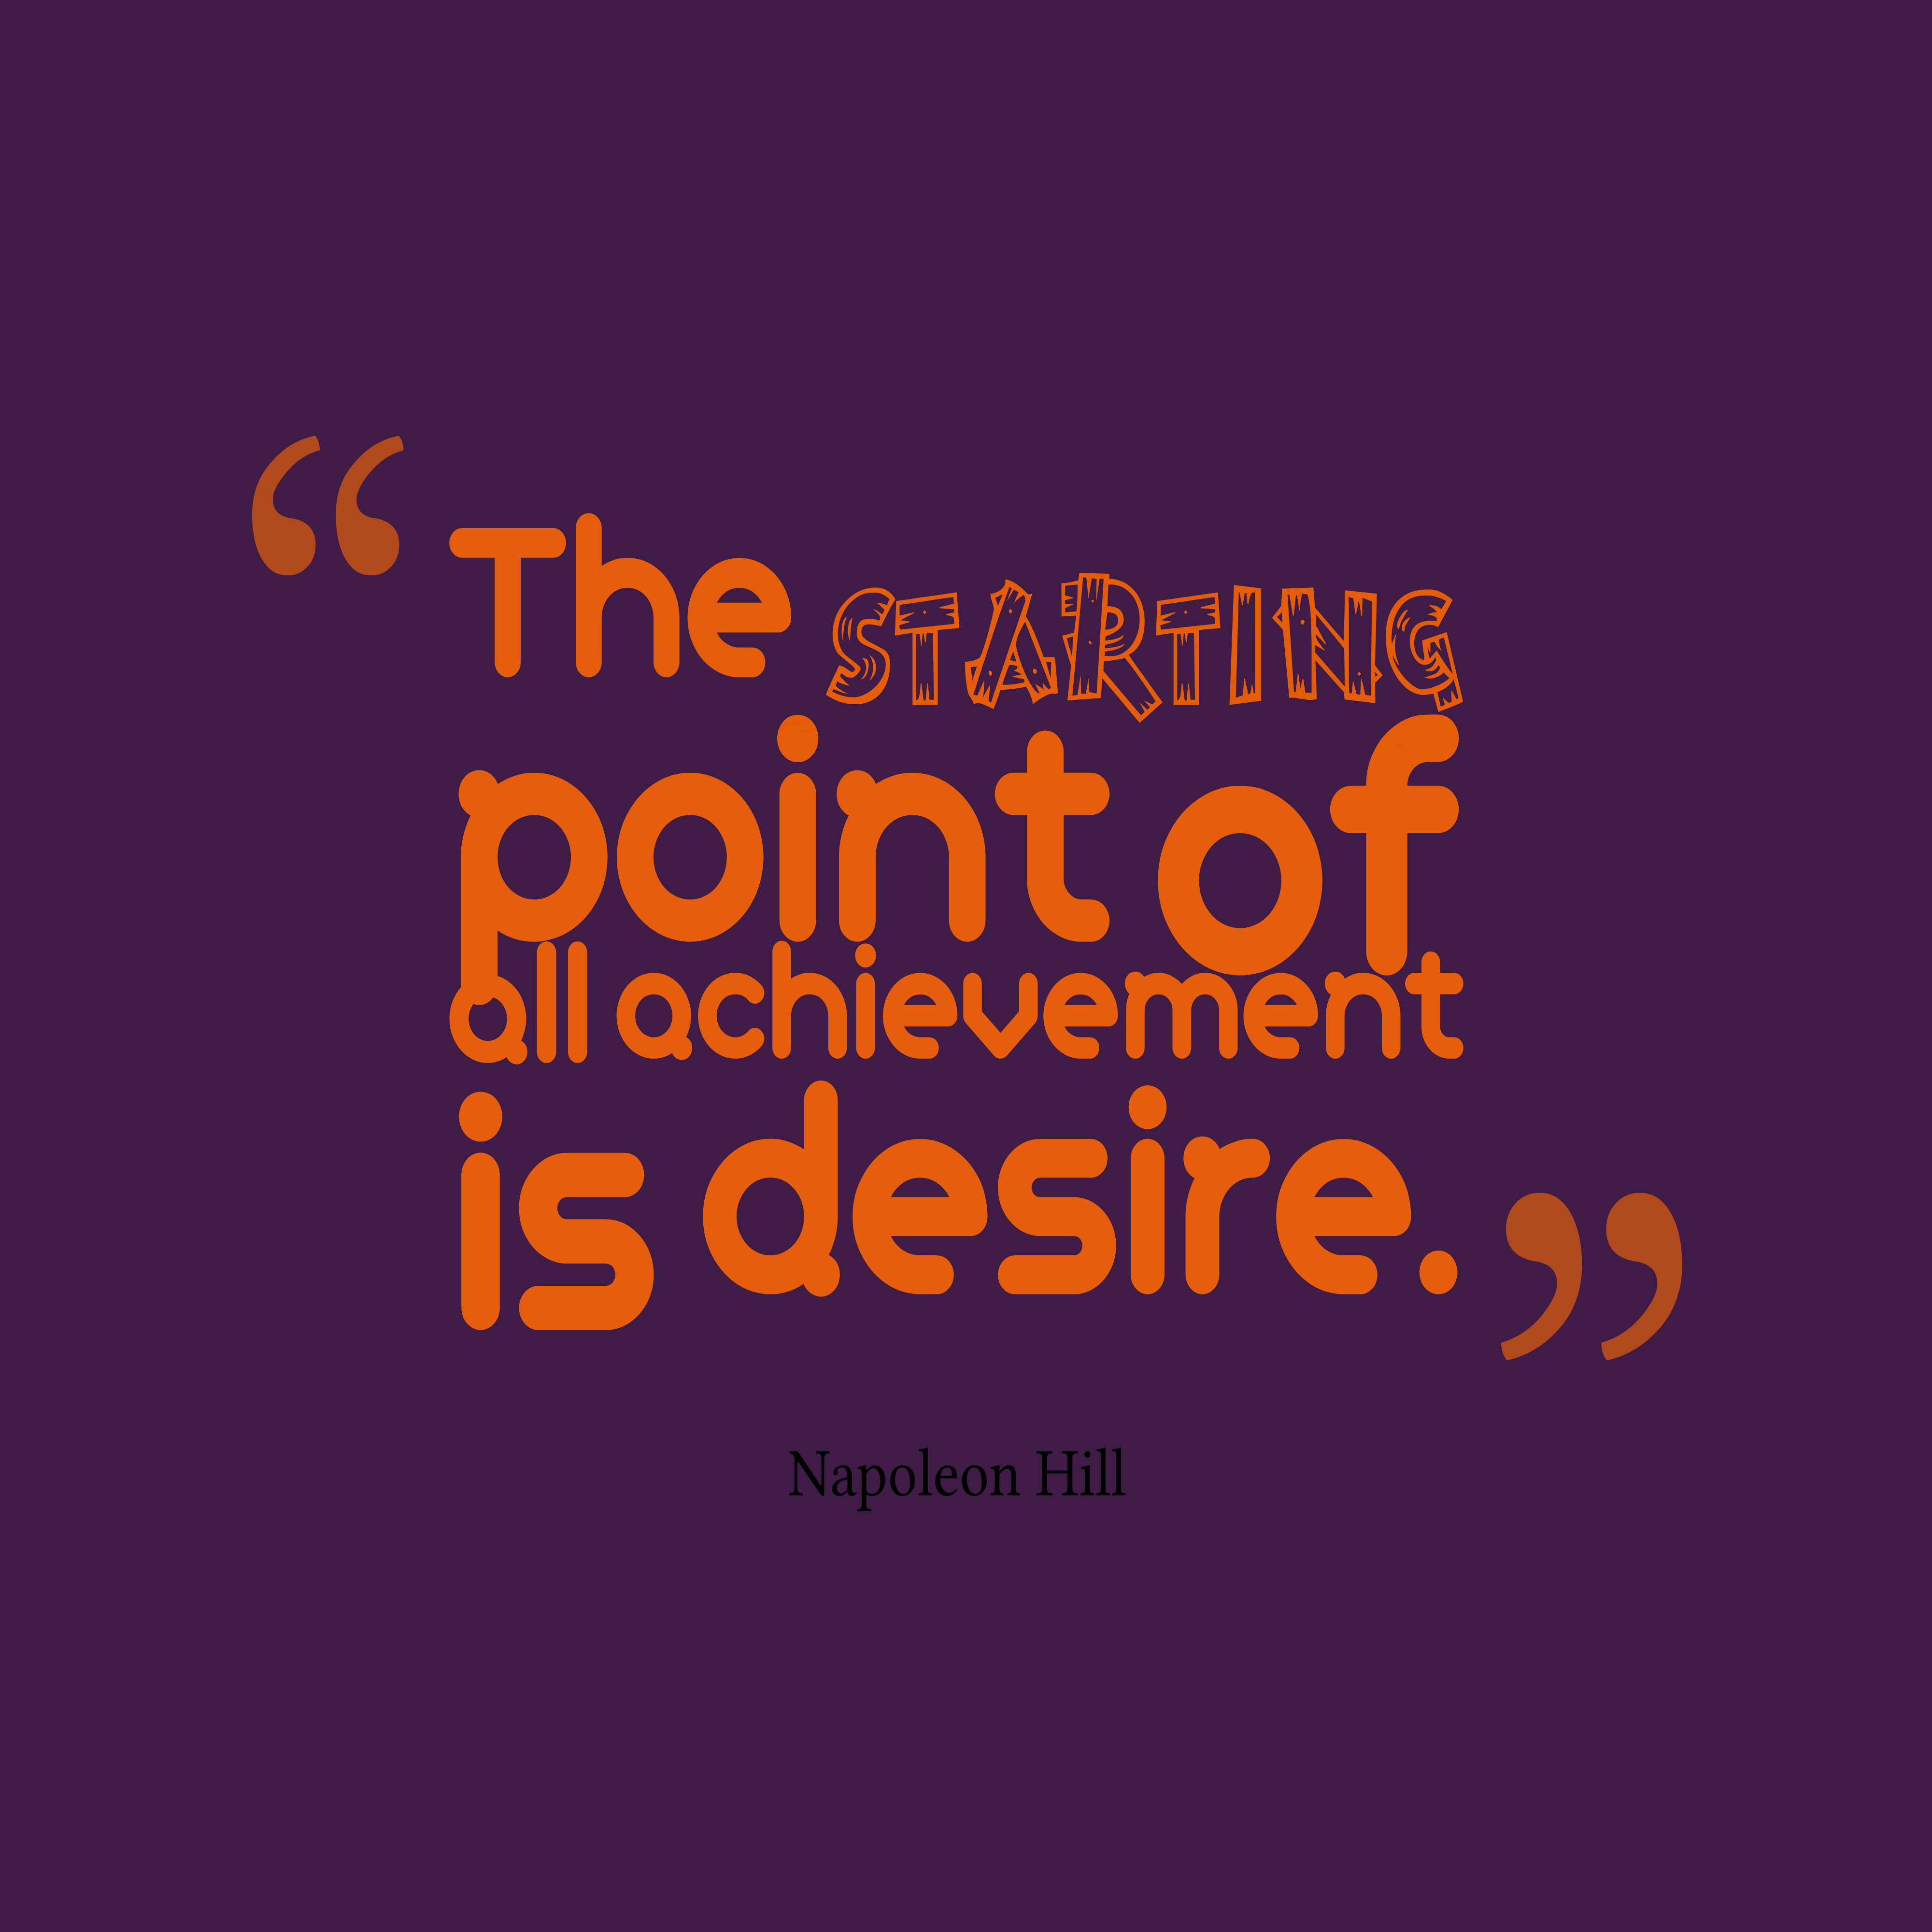 Napoleon Hill Quote About Desire